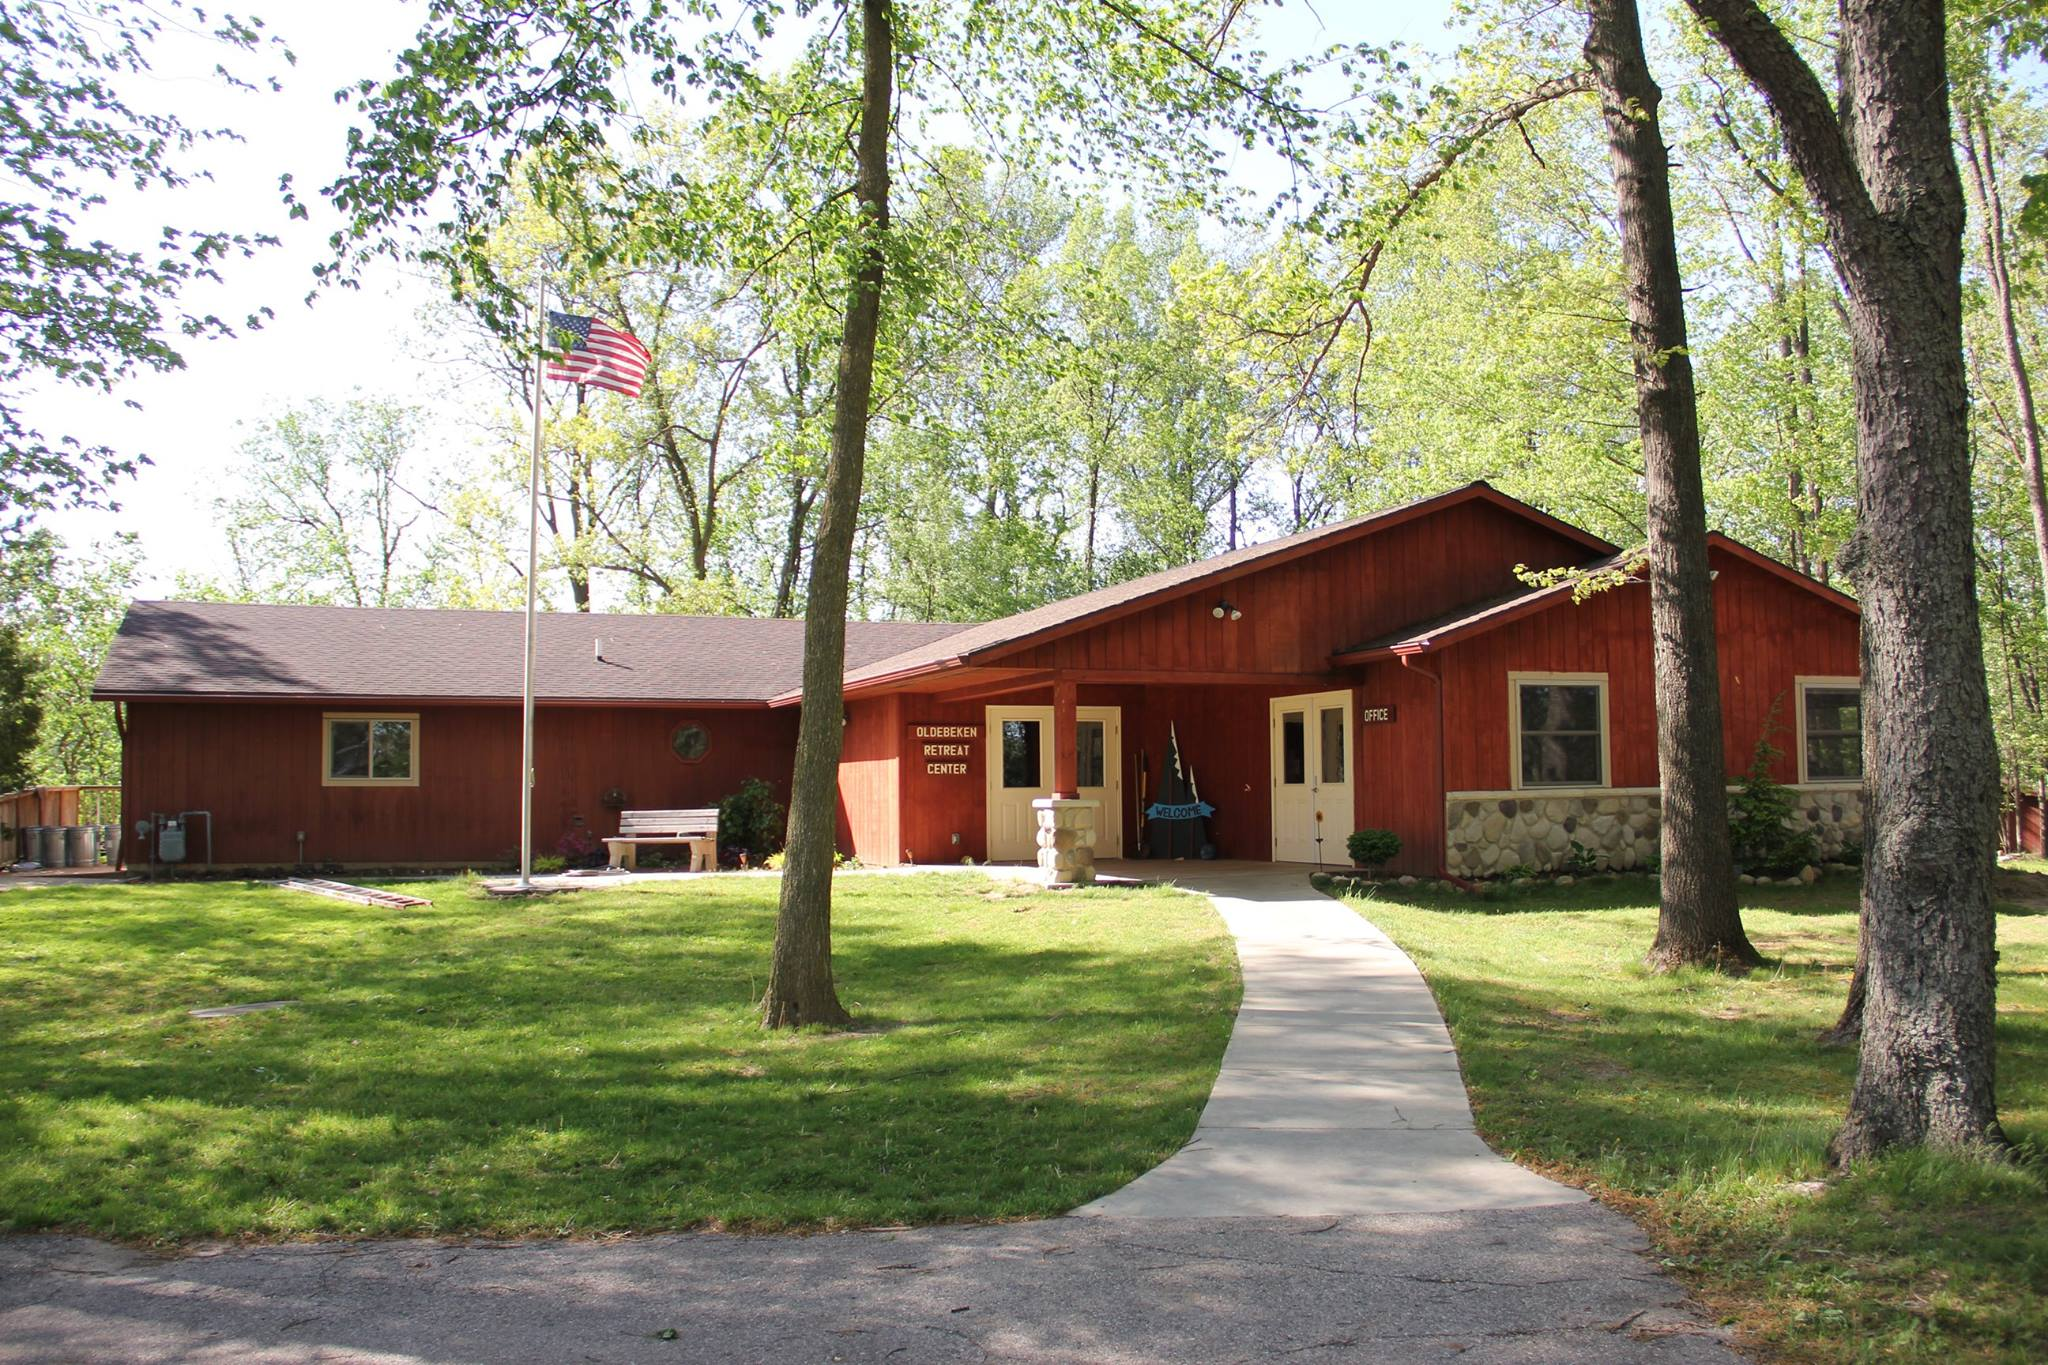 Oldebeken Retreat Center is the hub of all activities at SON-Life, featuring meeting space, back deck, bathrooms & showers, game room, and our camp offices.